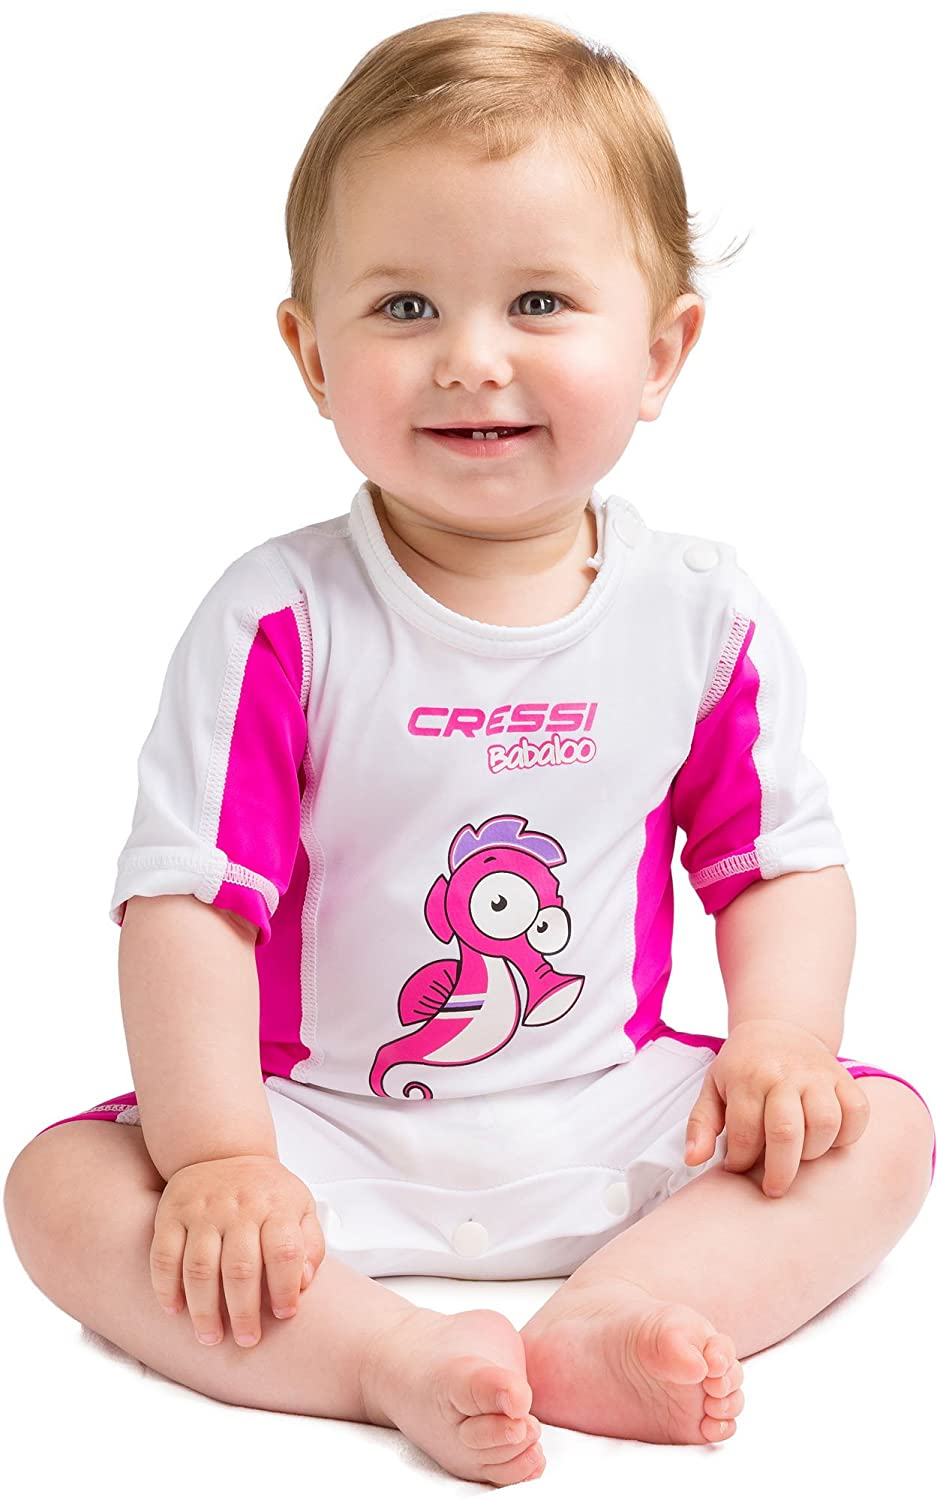 Cressi BABALOO BEACHWEAR, Kids Rash Guard with SPF 50+ for Swimming and Snorkeling - Cressi: Quality Since 1946 USR010101B